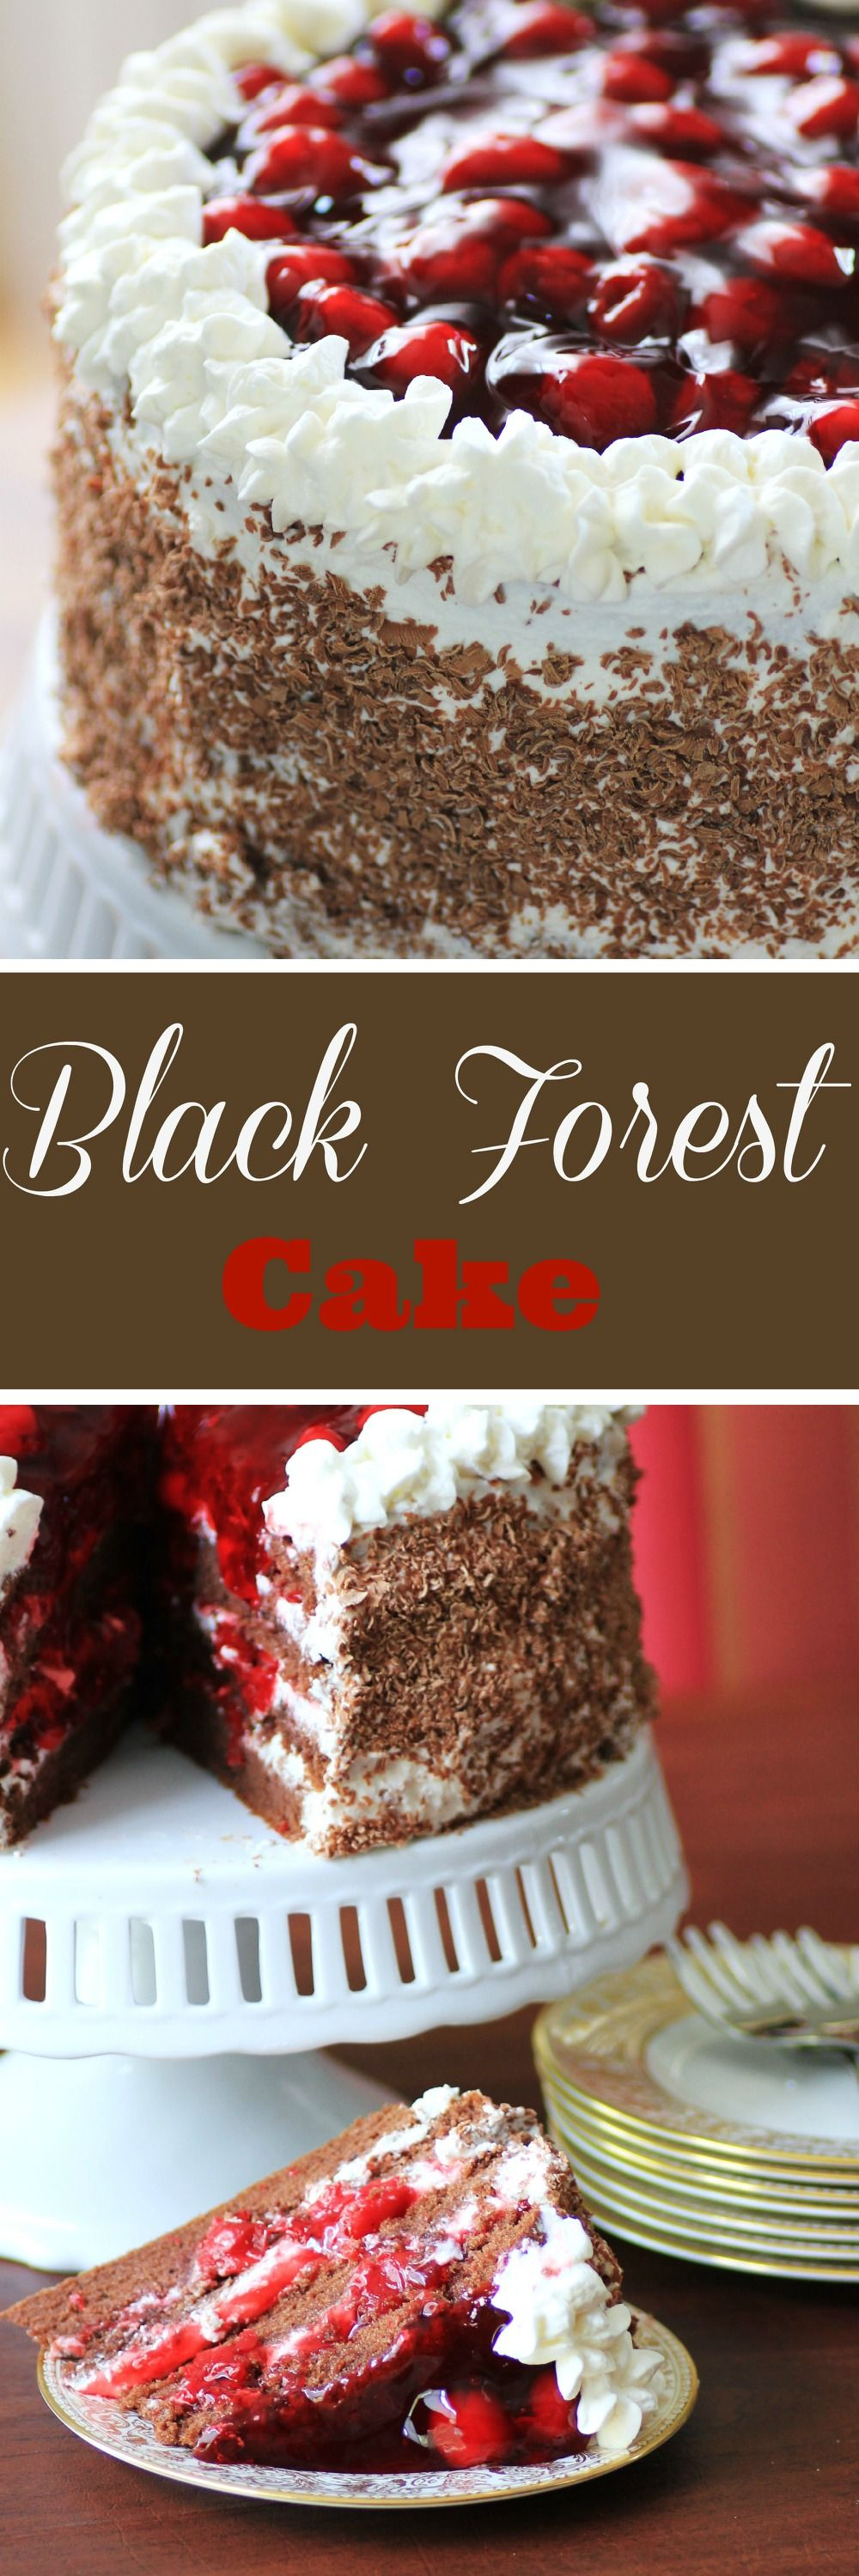 Black Forest Cake by Noshing With The Nolands - A light cake, first drizzled with a Kirsch-laden syrup, then layered with whipped cream and dripping with luscious cherries. Great Father's Day treat!!